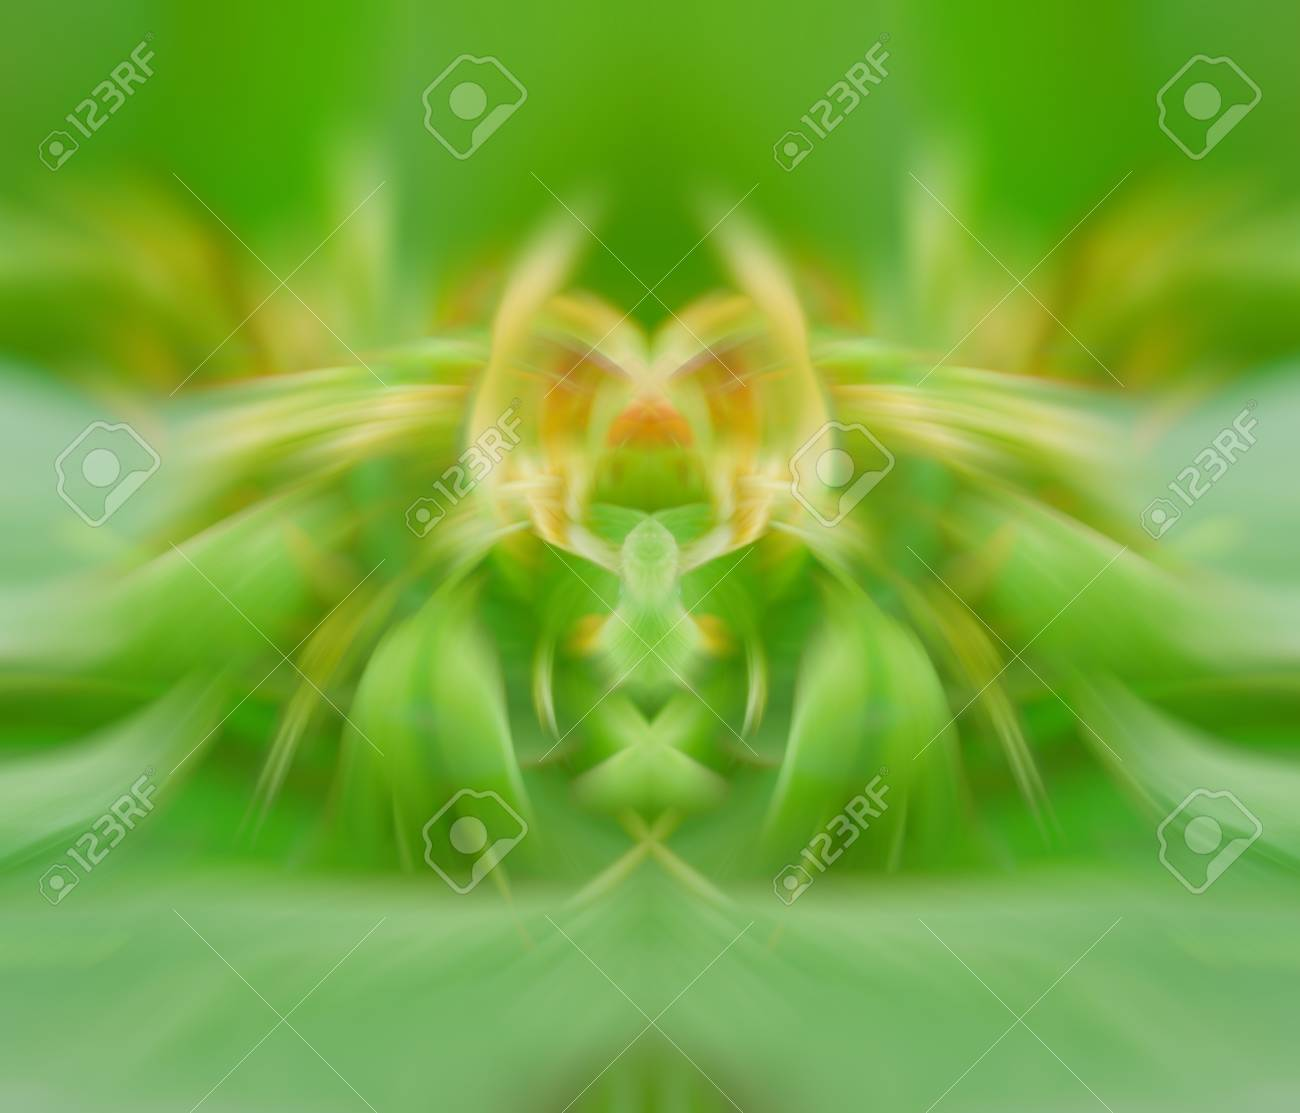 Abstract background Stock Photo - 10626401